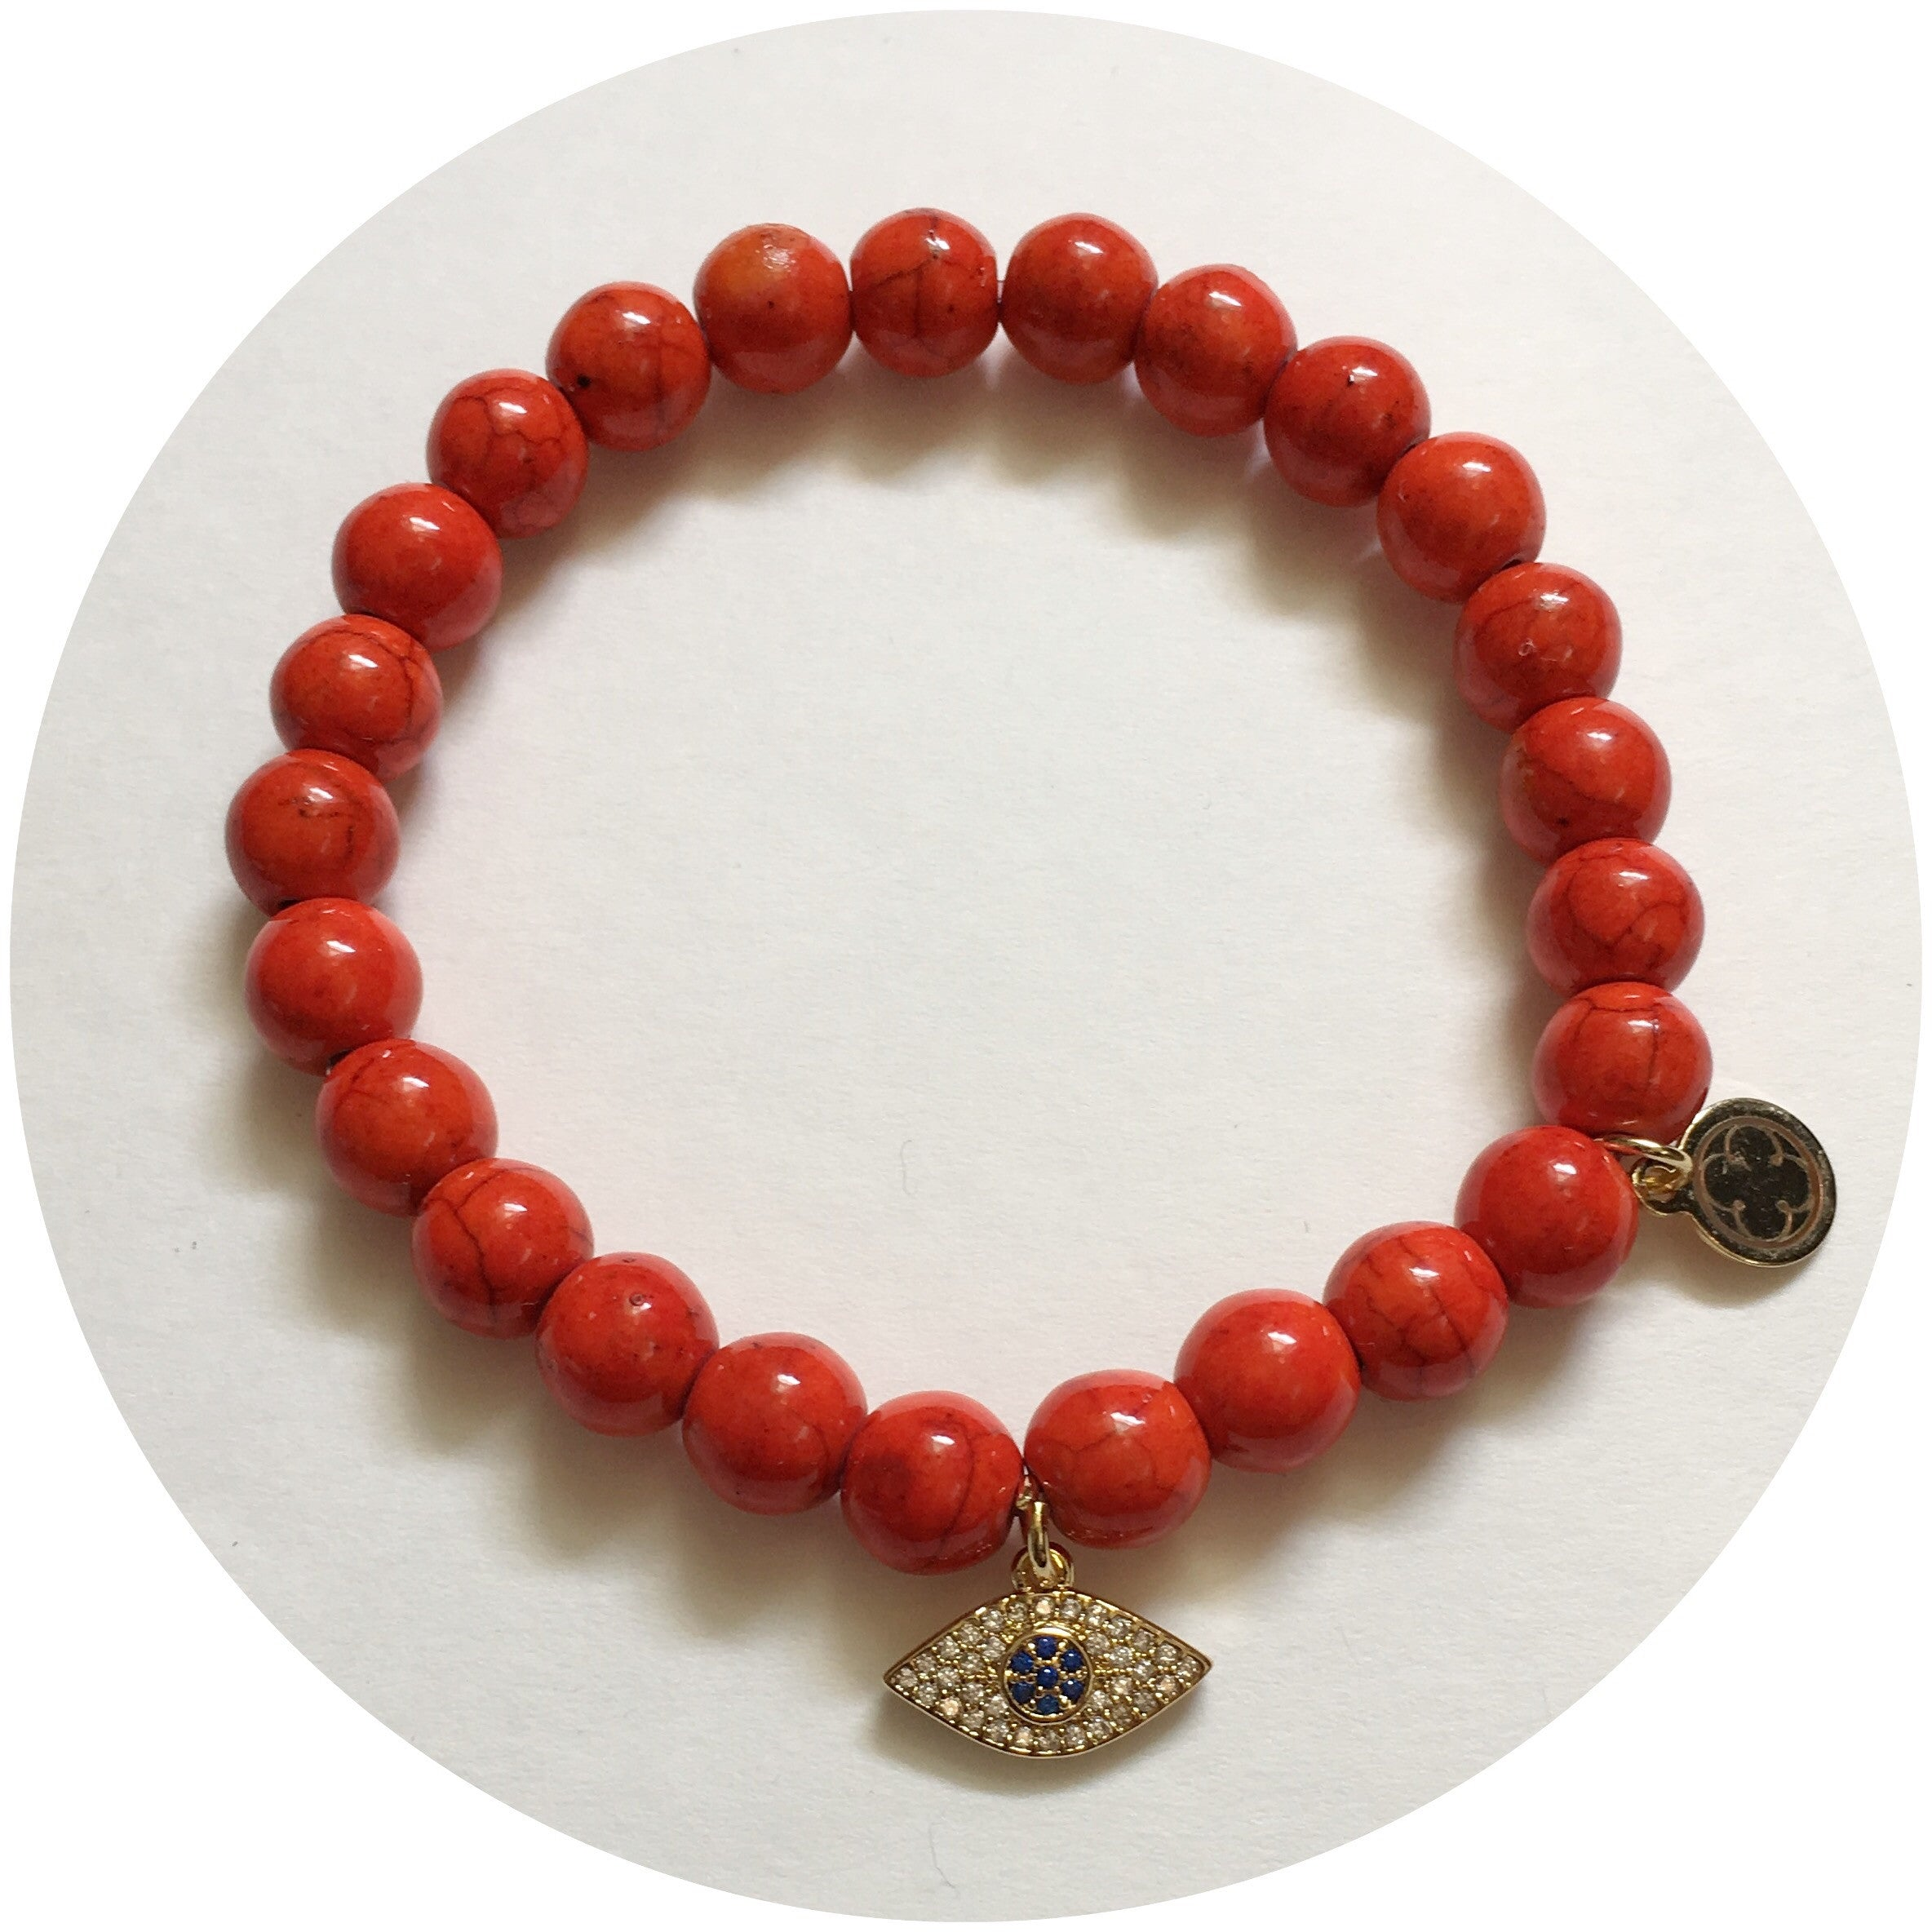 Orange Howlite with Pavé Evil Eye Pendant - Oriana Lamarca LLC